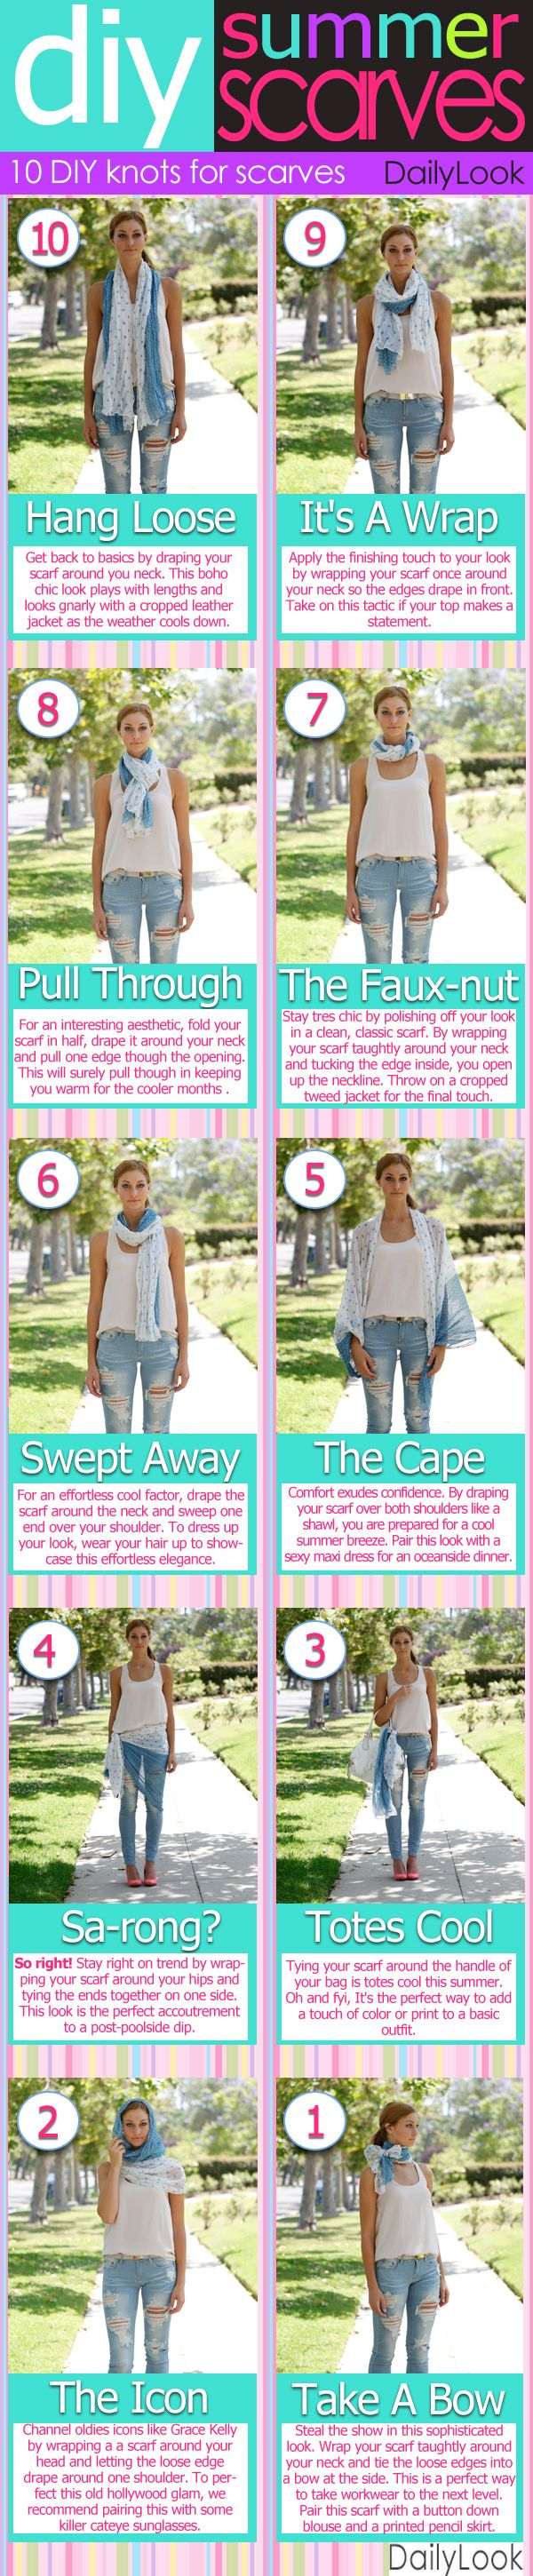 The 10 ways to wear a summer scarf on DailyLookSummer Scarves, Fashion Style, Clothing, Wear A Scarf, Summer Scarf, Scarves Summer, Dailylook Com, Wear Scarves, Scarf Knots